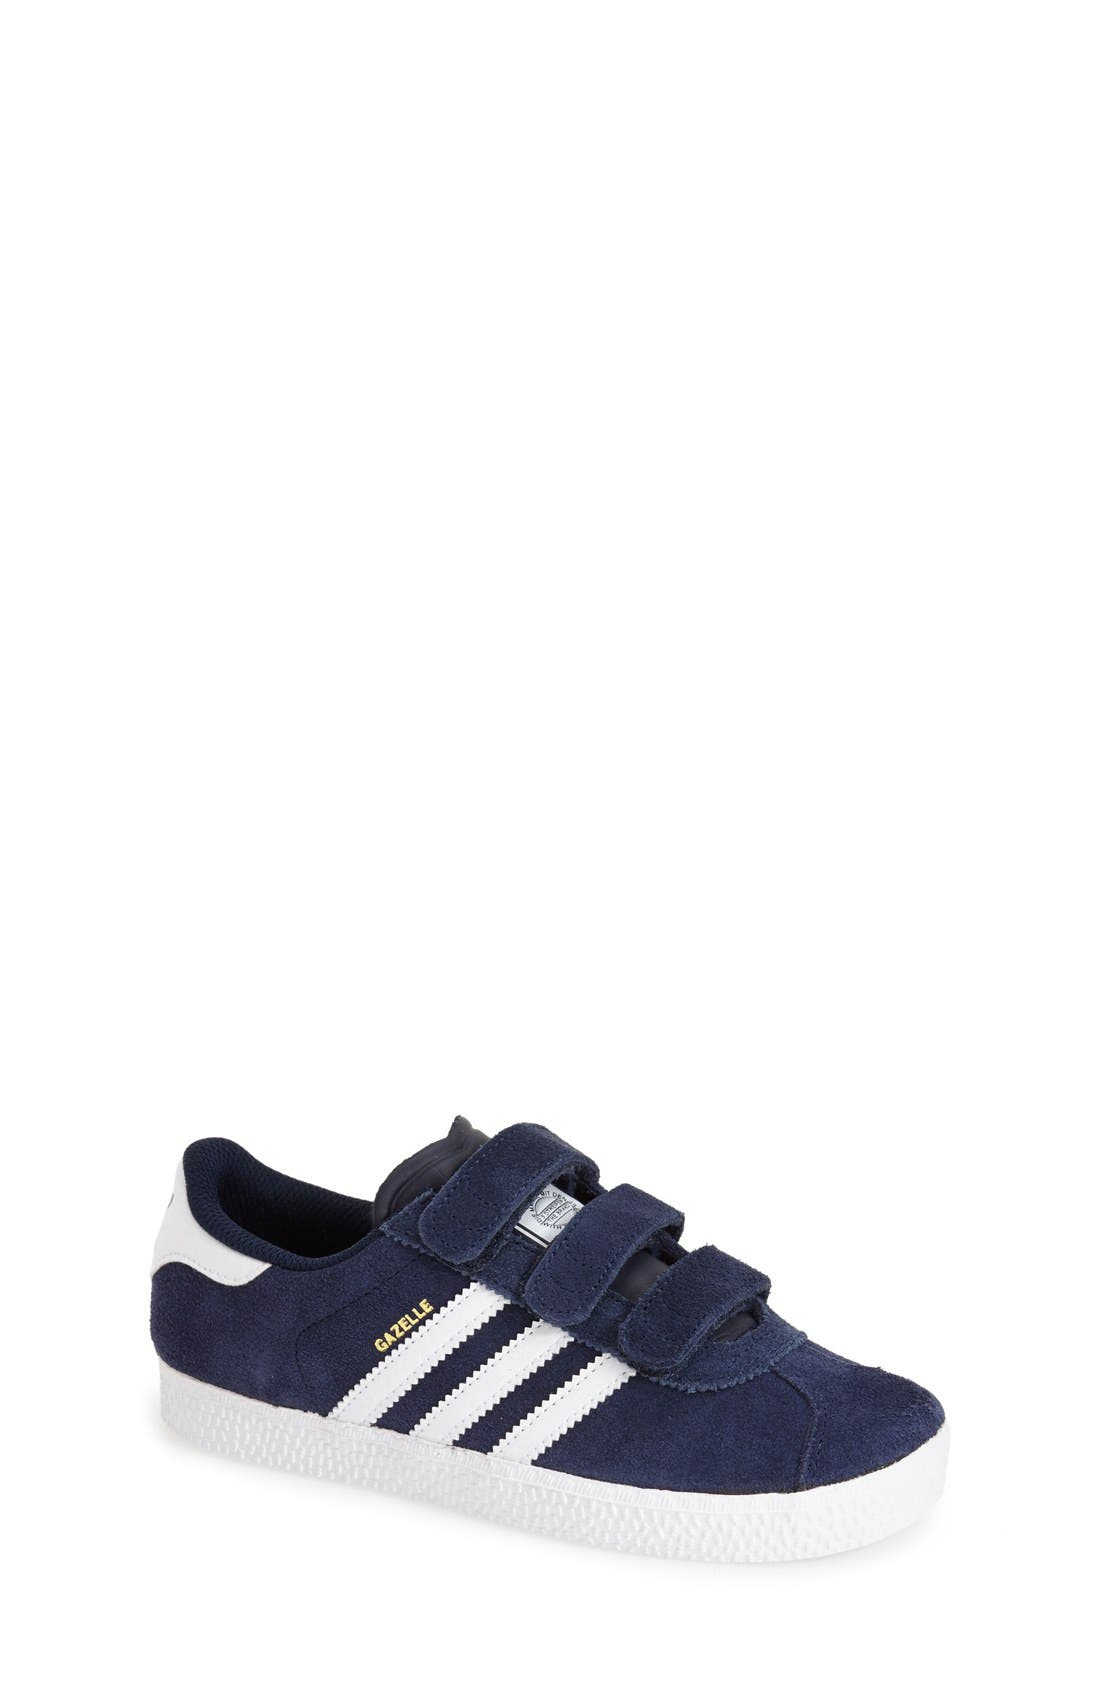 Alternate Image 1 Selected - adidas 'Gazelle' Sneaker (Toddler & Little Kid)